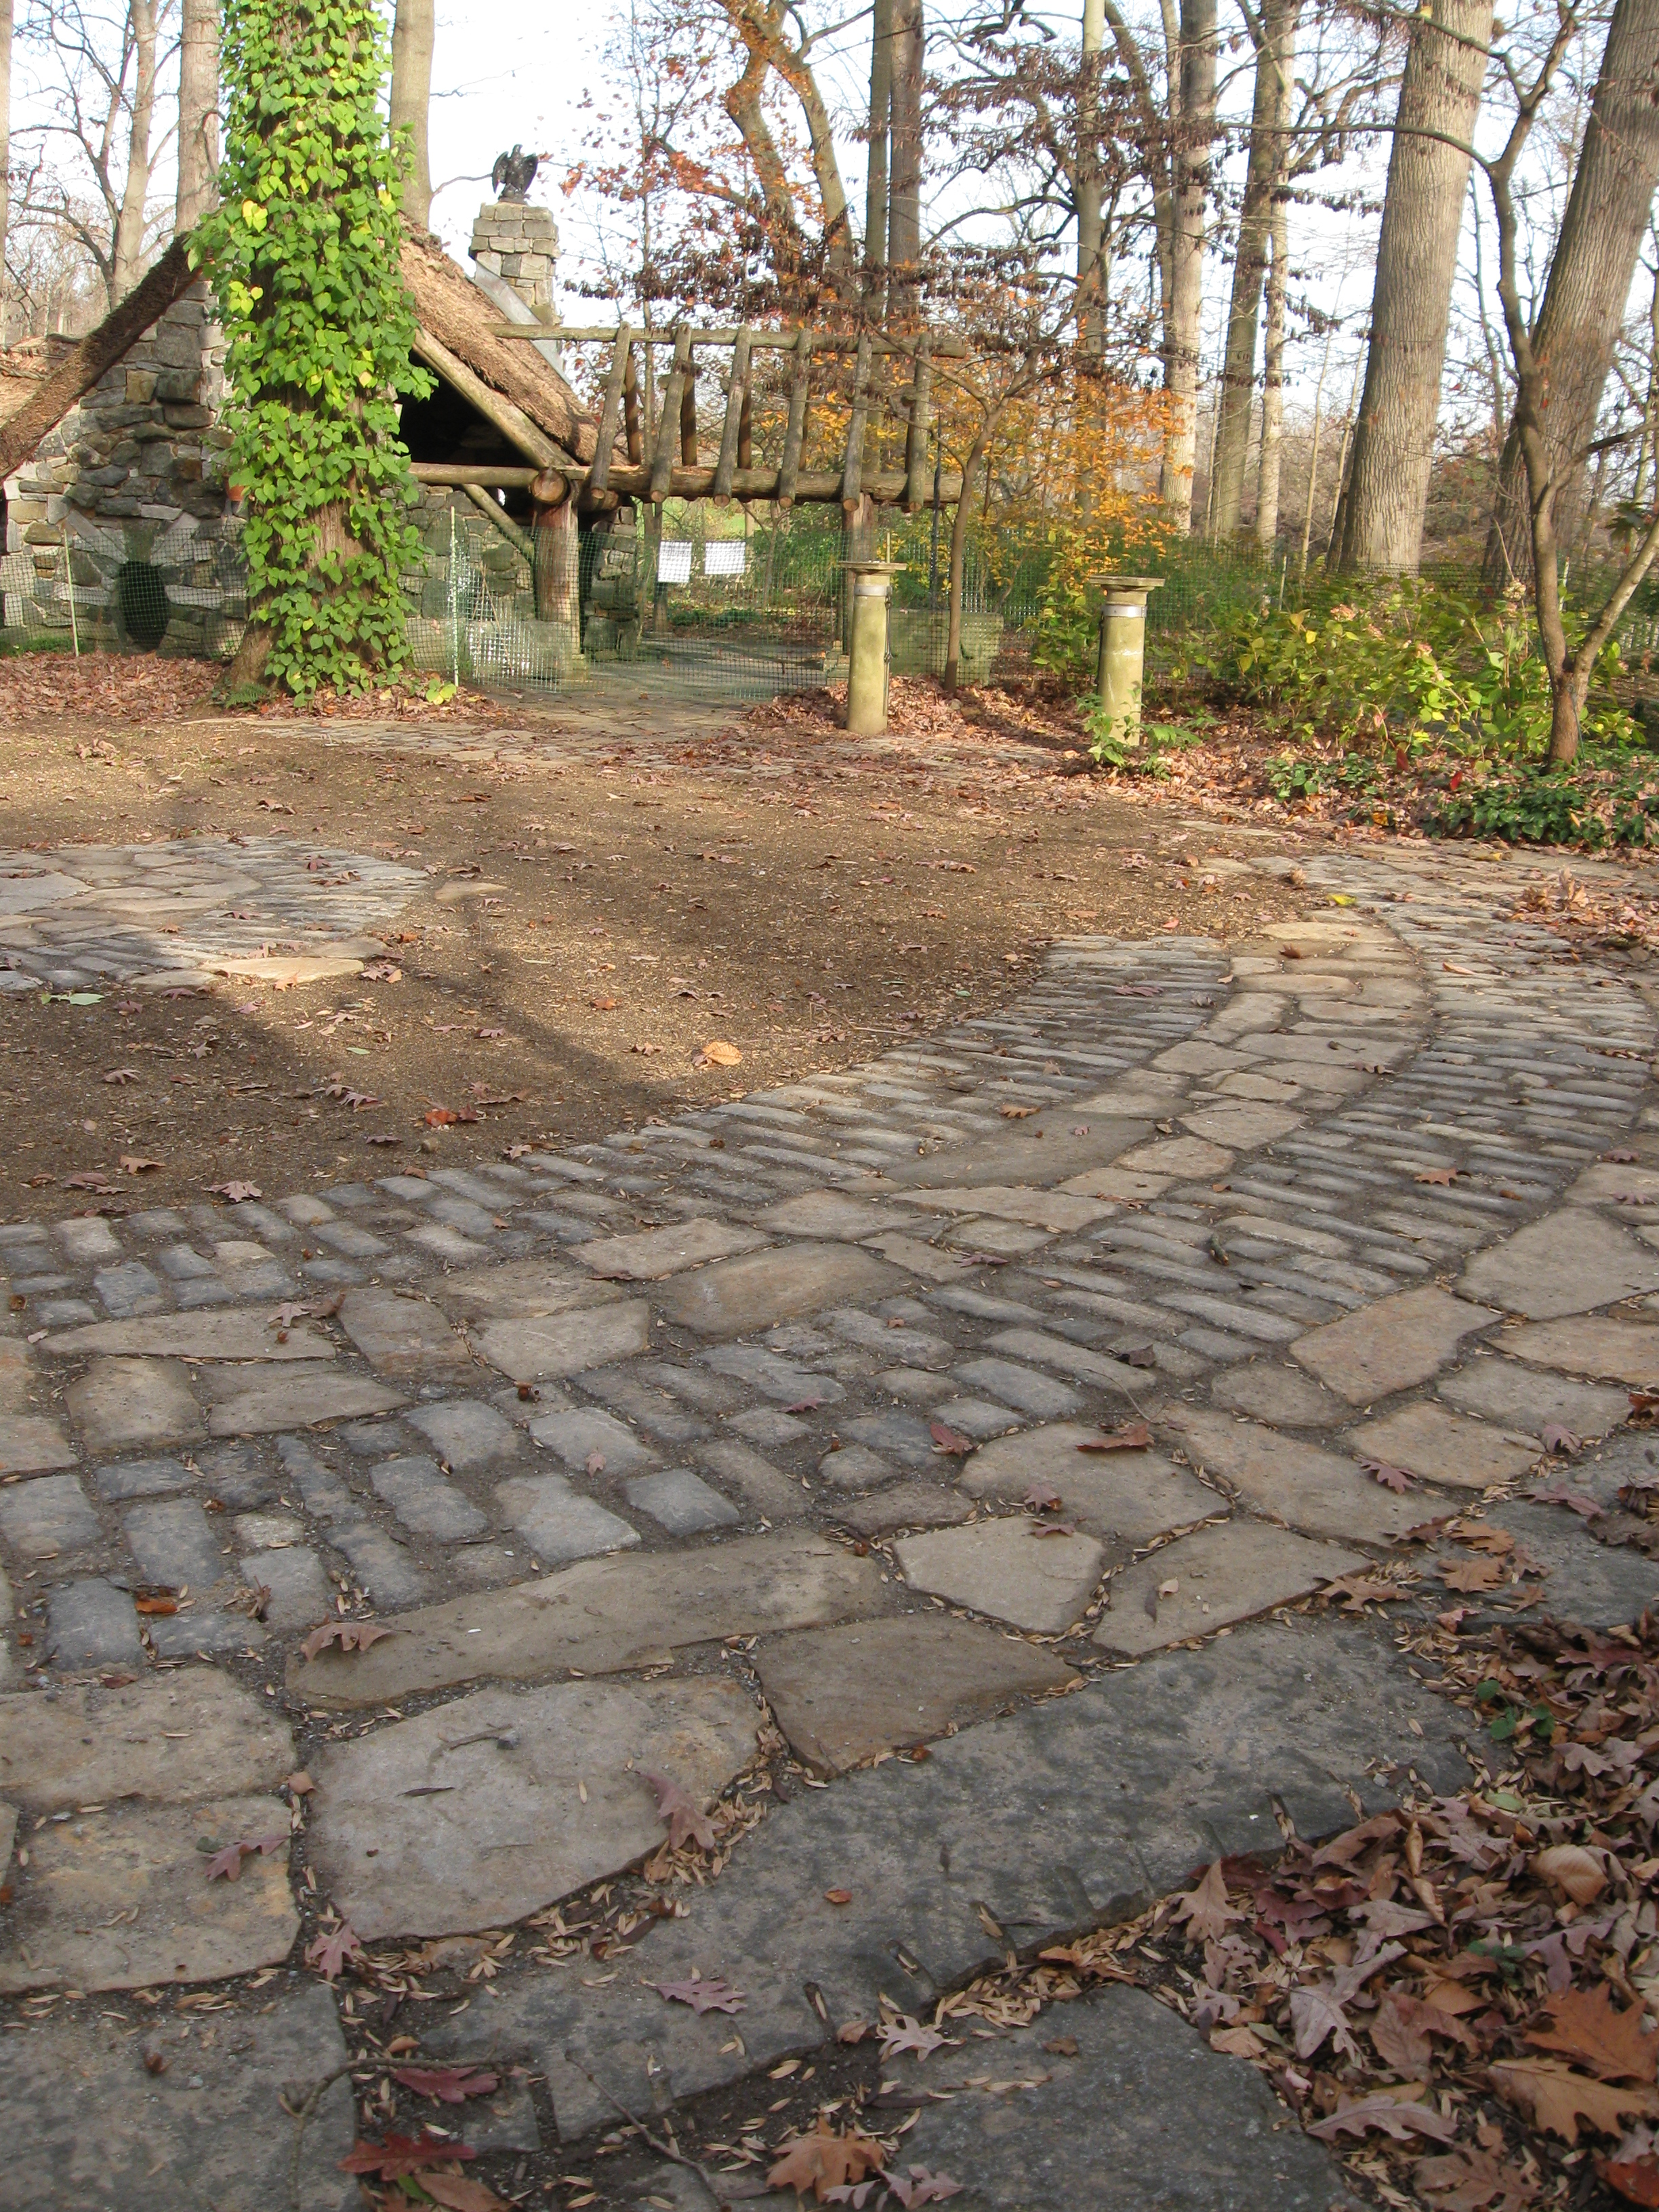 Former wear spots filled with stone patterns